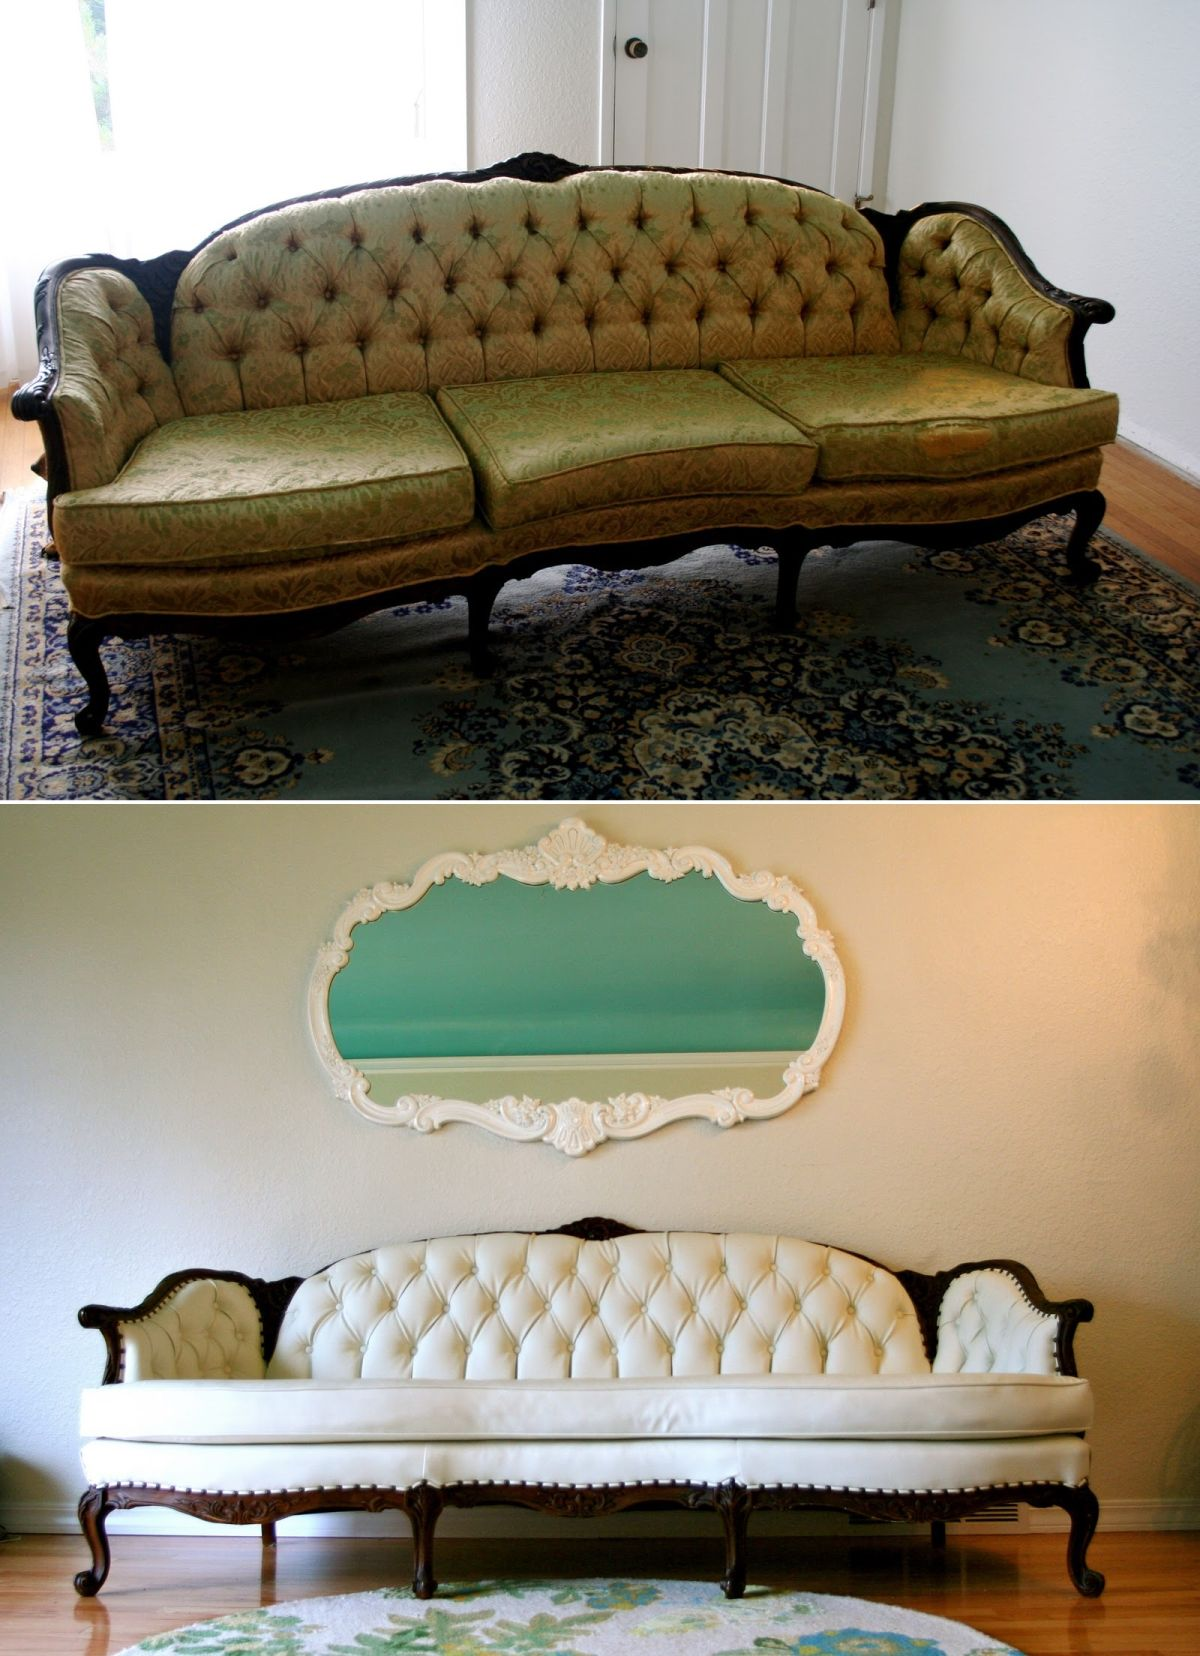 Full sofa makeover